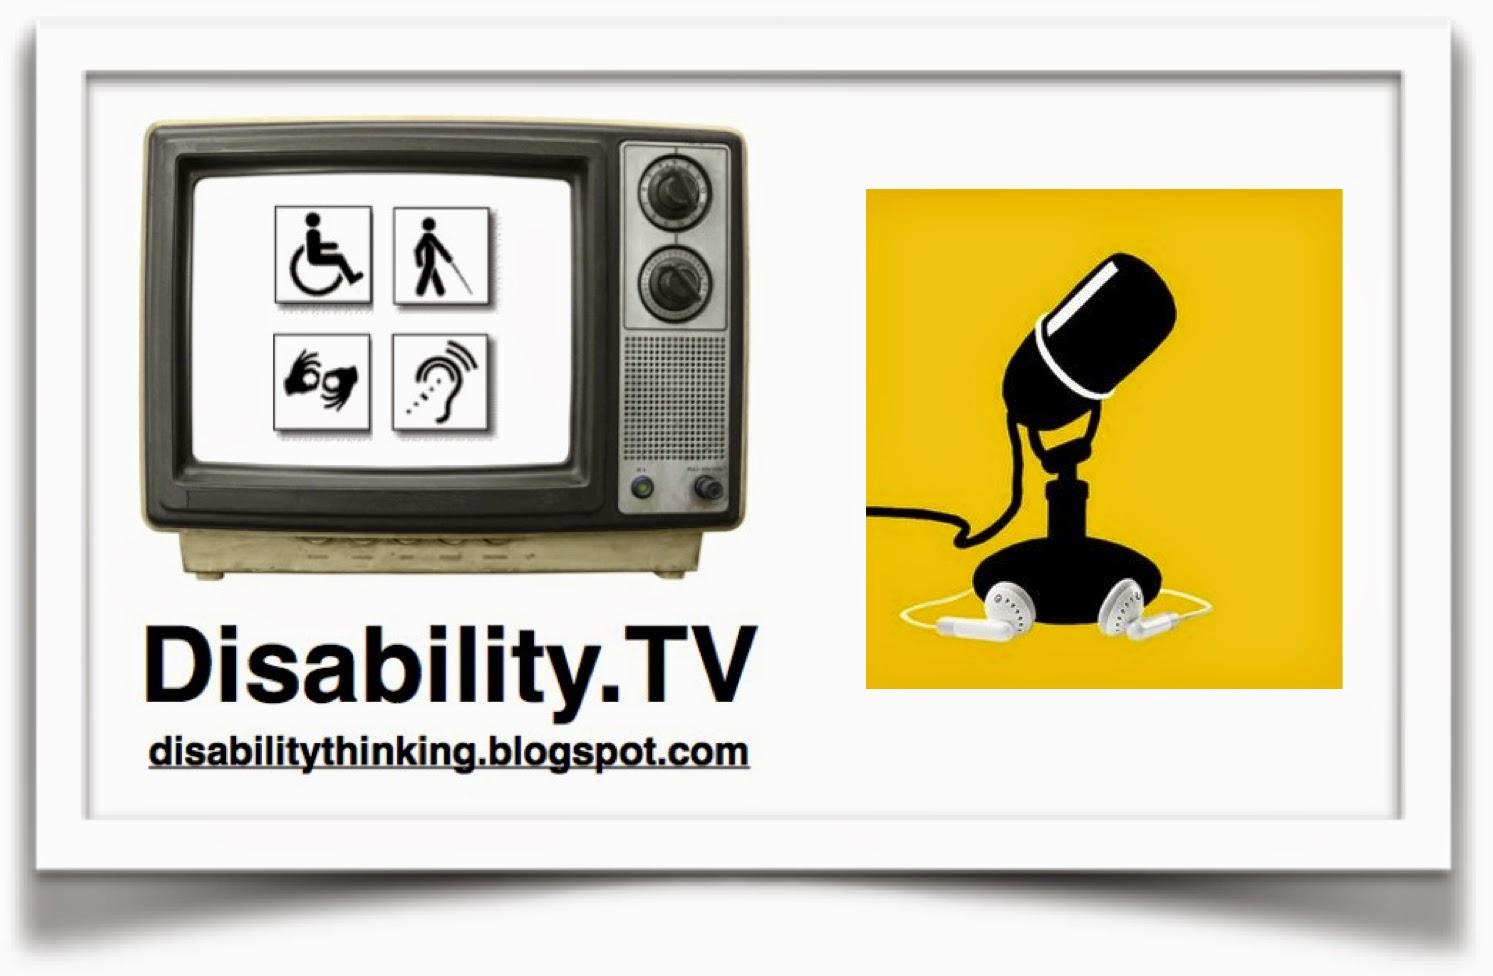 Disability.TV podcast logo